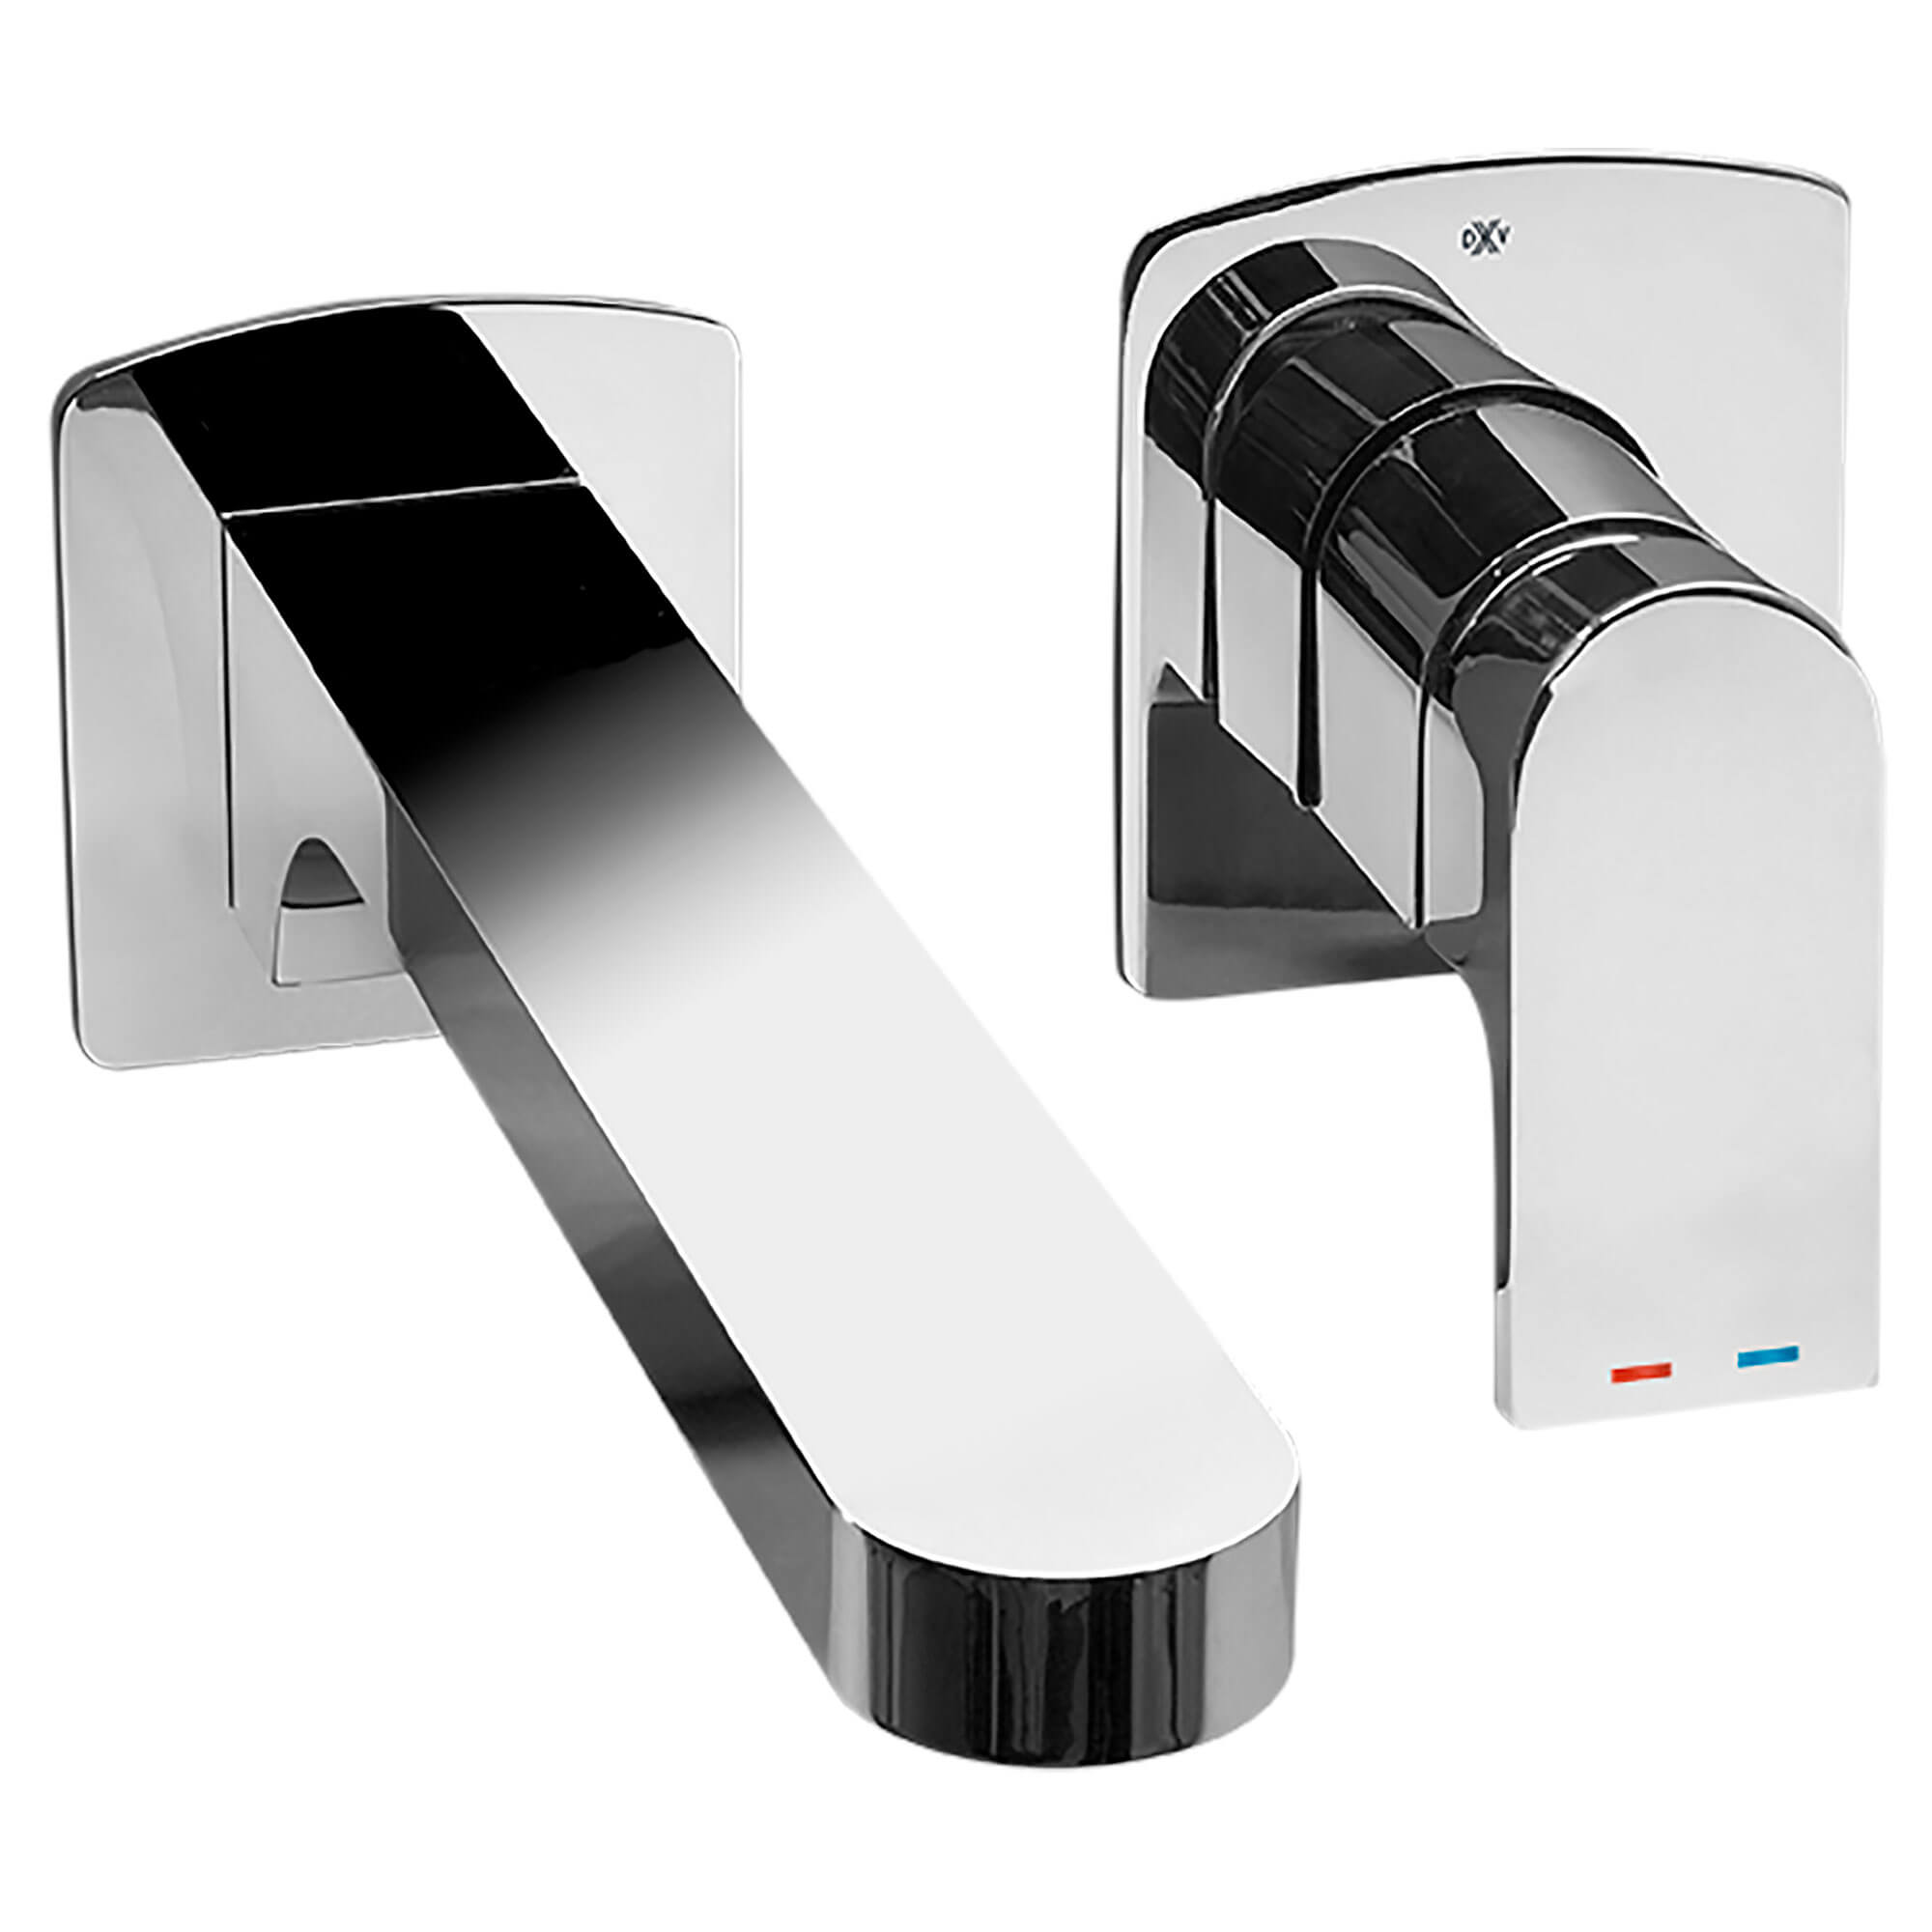 Equility wall-mount faucet by DXV